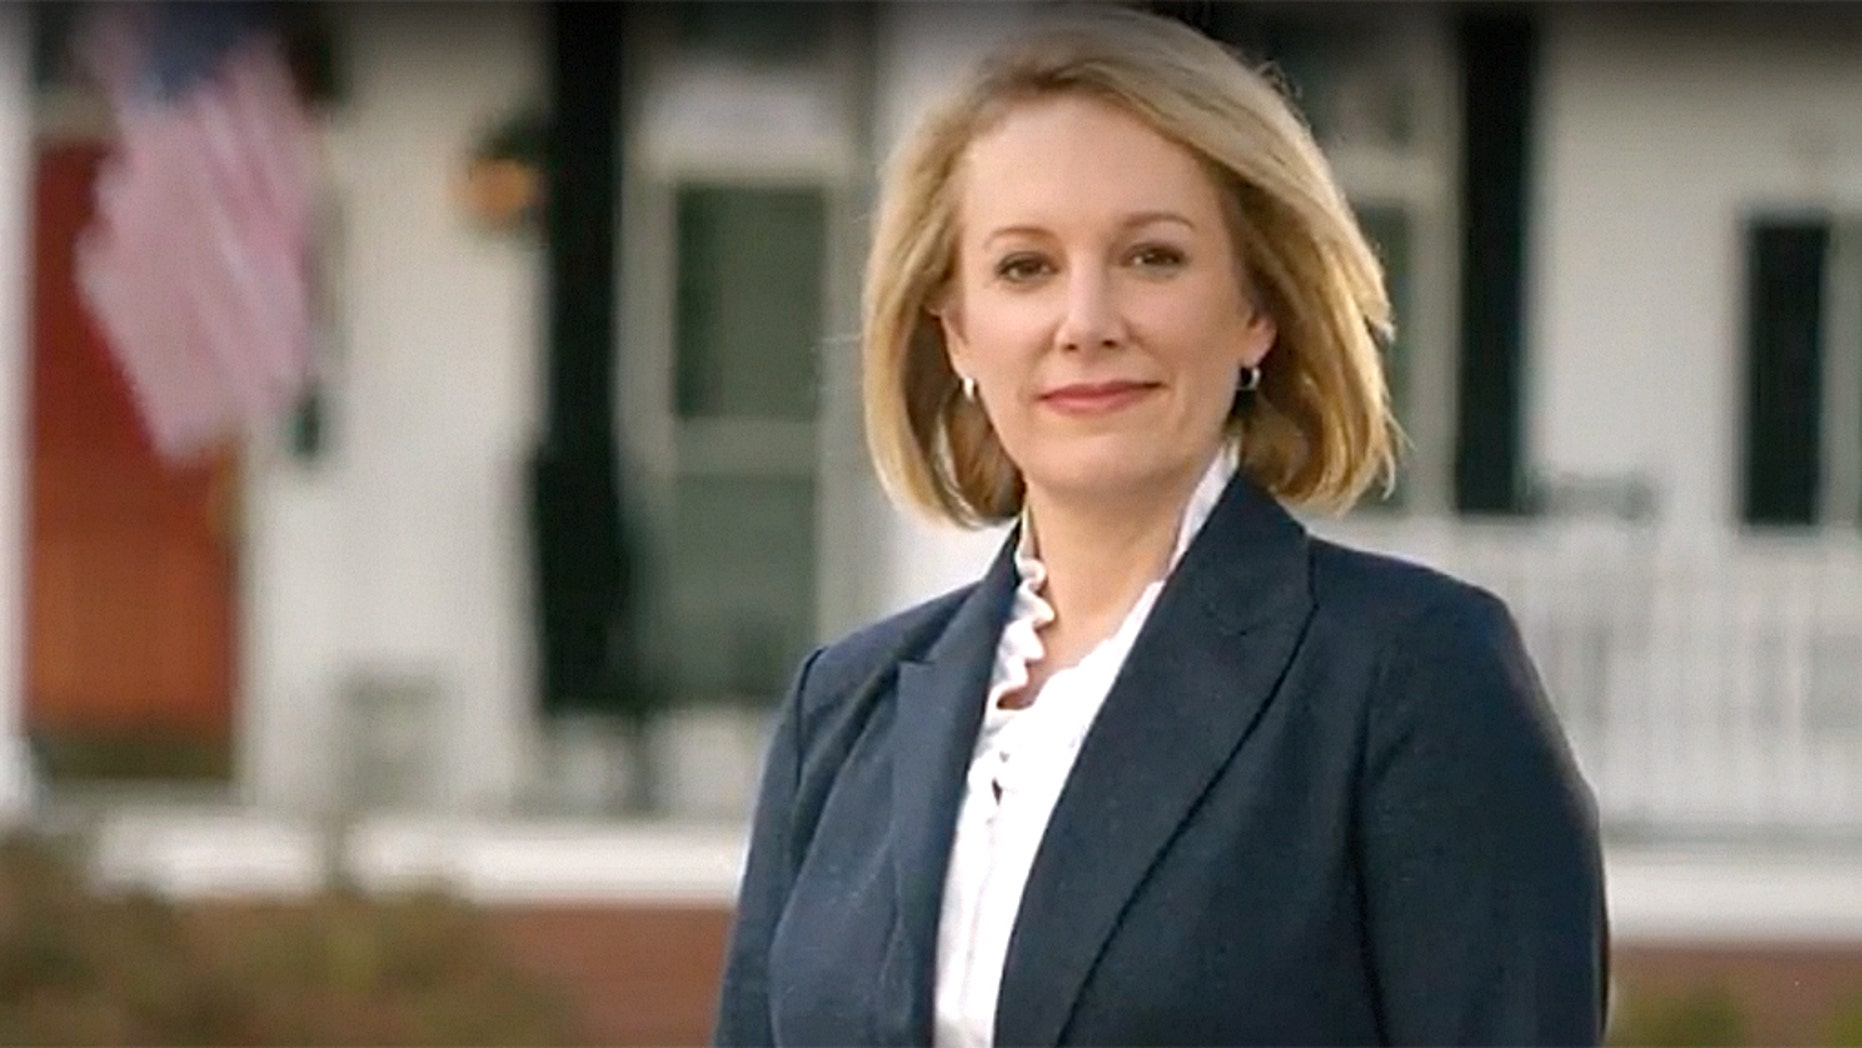 """Attorney Catherine Templeton, a GOP candidate for governor in South Carolina, promised to go after the """"snakes slithering around"""" the state capital in her latest campaign ad."""